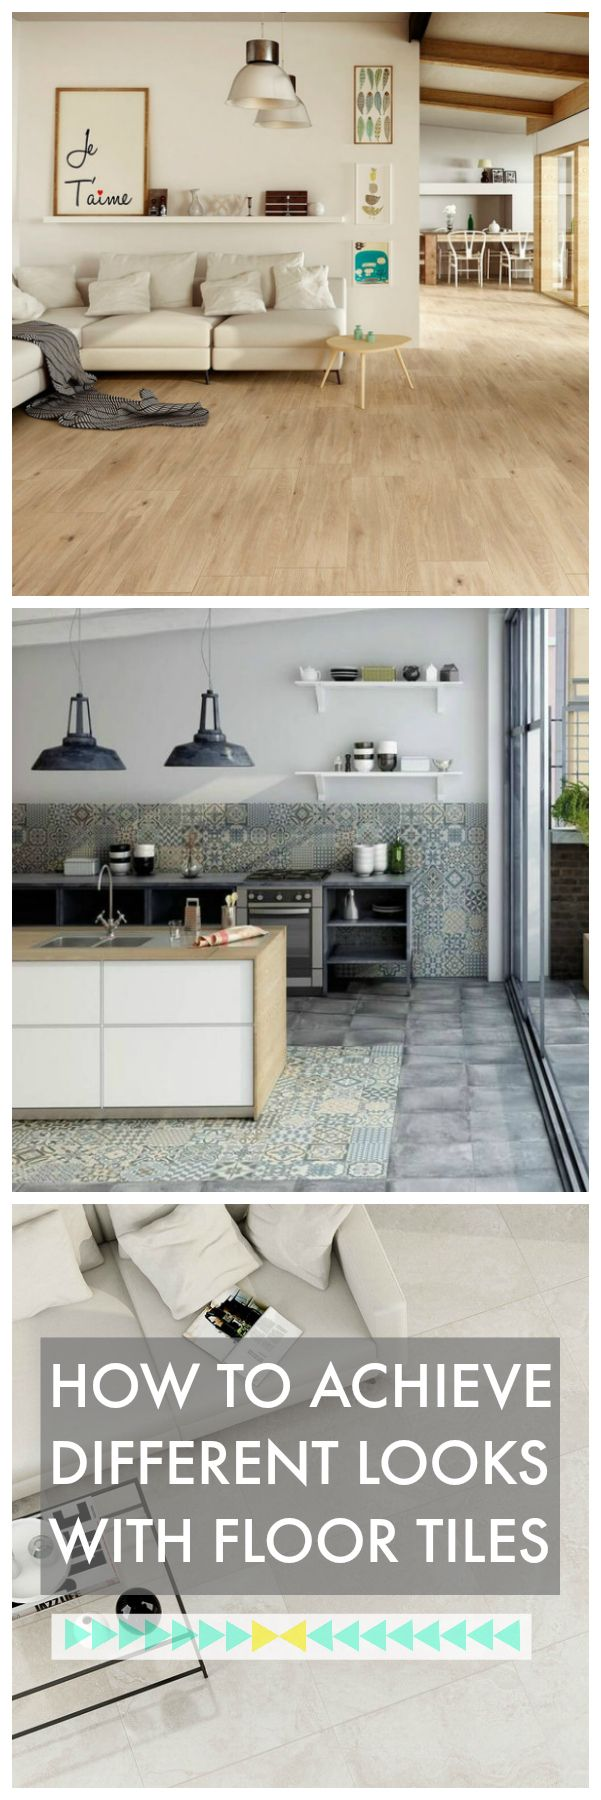 Floor tiles have come a long way and can now be found in many different styles and designs to suit our homes. From wood effect to heritage to glossy marble effect tiles, they are very popular, easy to clean and very durable. Click through for more ideas on using beautiful floor tiles in your home.